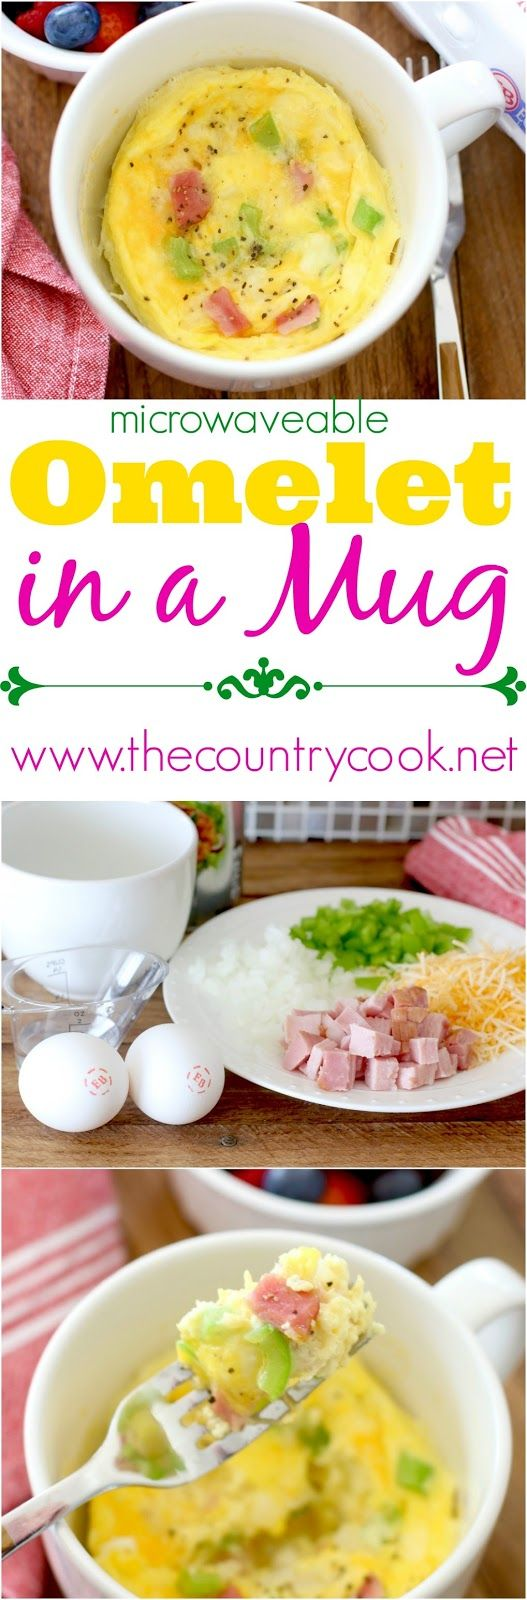 Microwaveable Omelet in a Mug recipe from The Country Cook. It's healthy thanks to the Eggland's Best eggs. The eggs turn out so fluffy and it's all done in about a minute! So good. Perfect for folks doing low carb or busy mornings! (cooking cake breakfast)